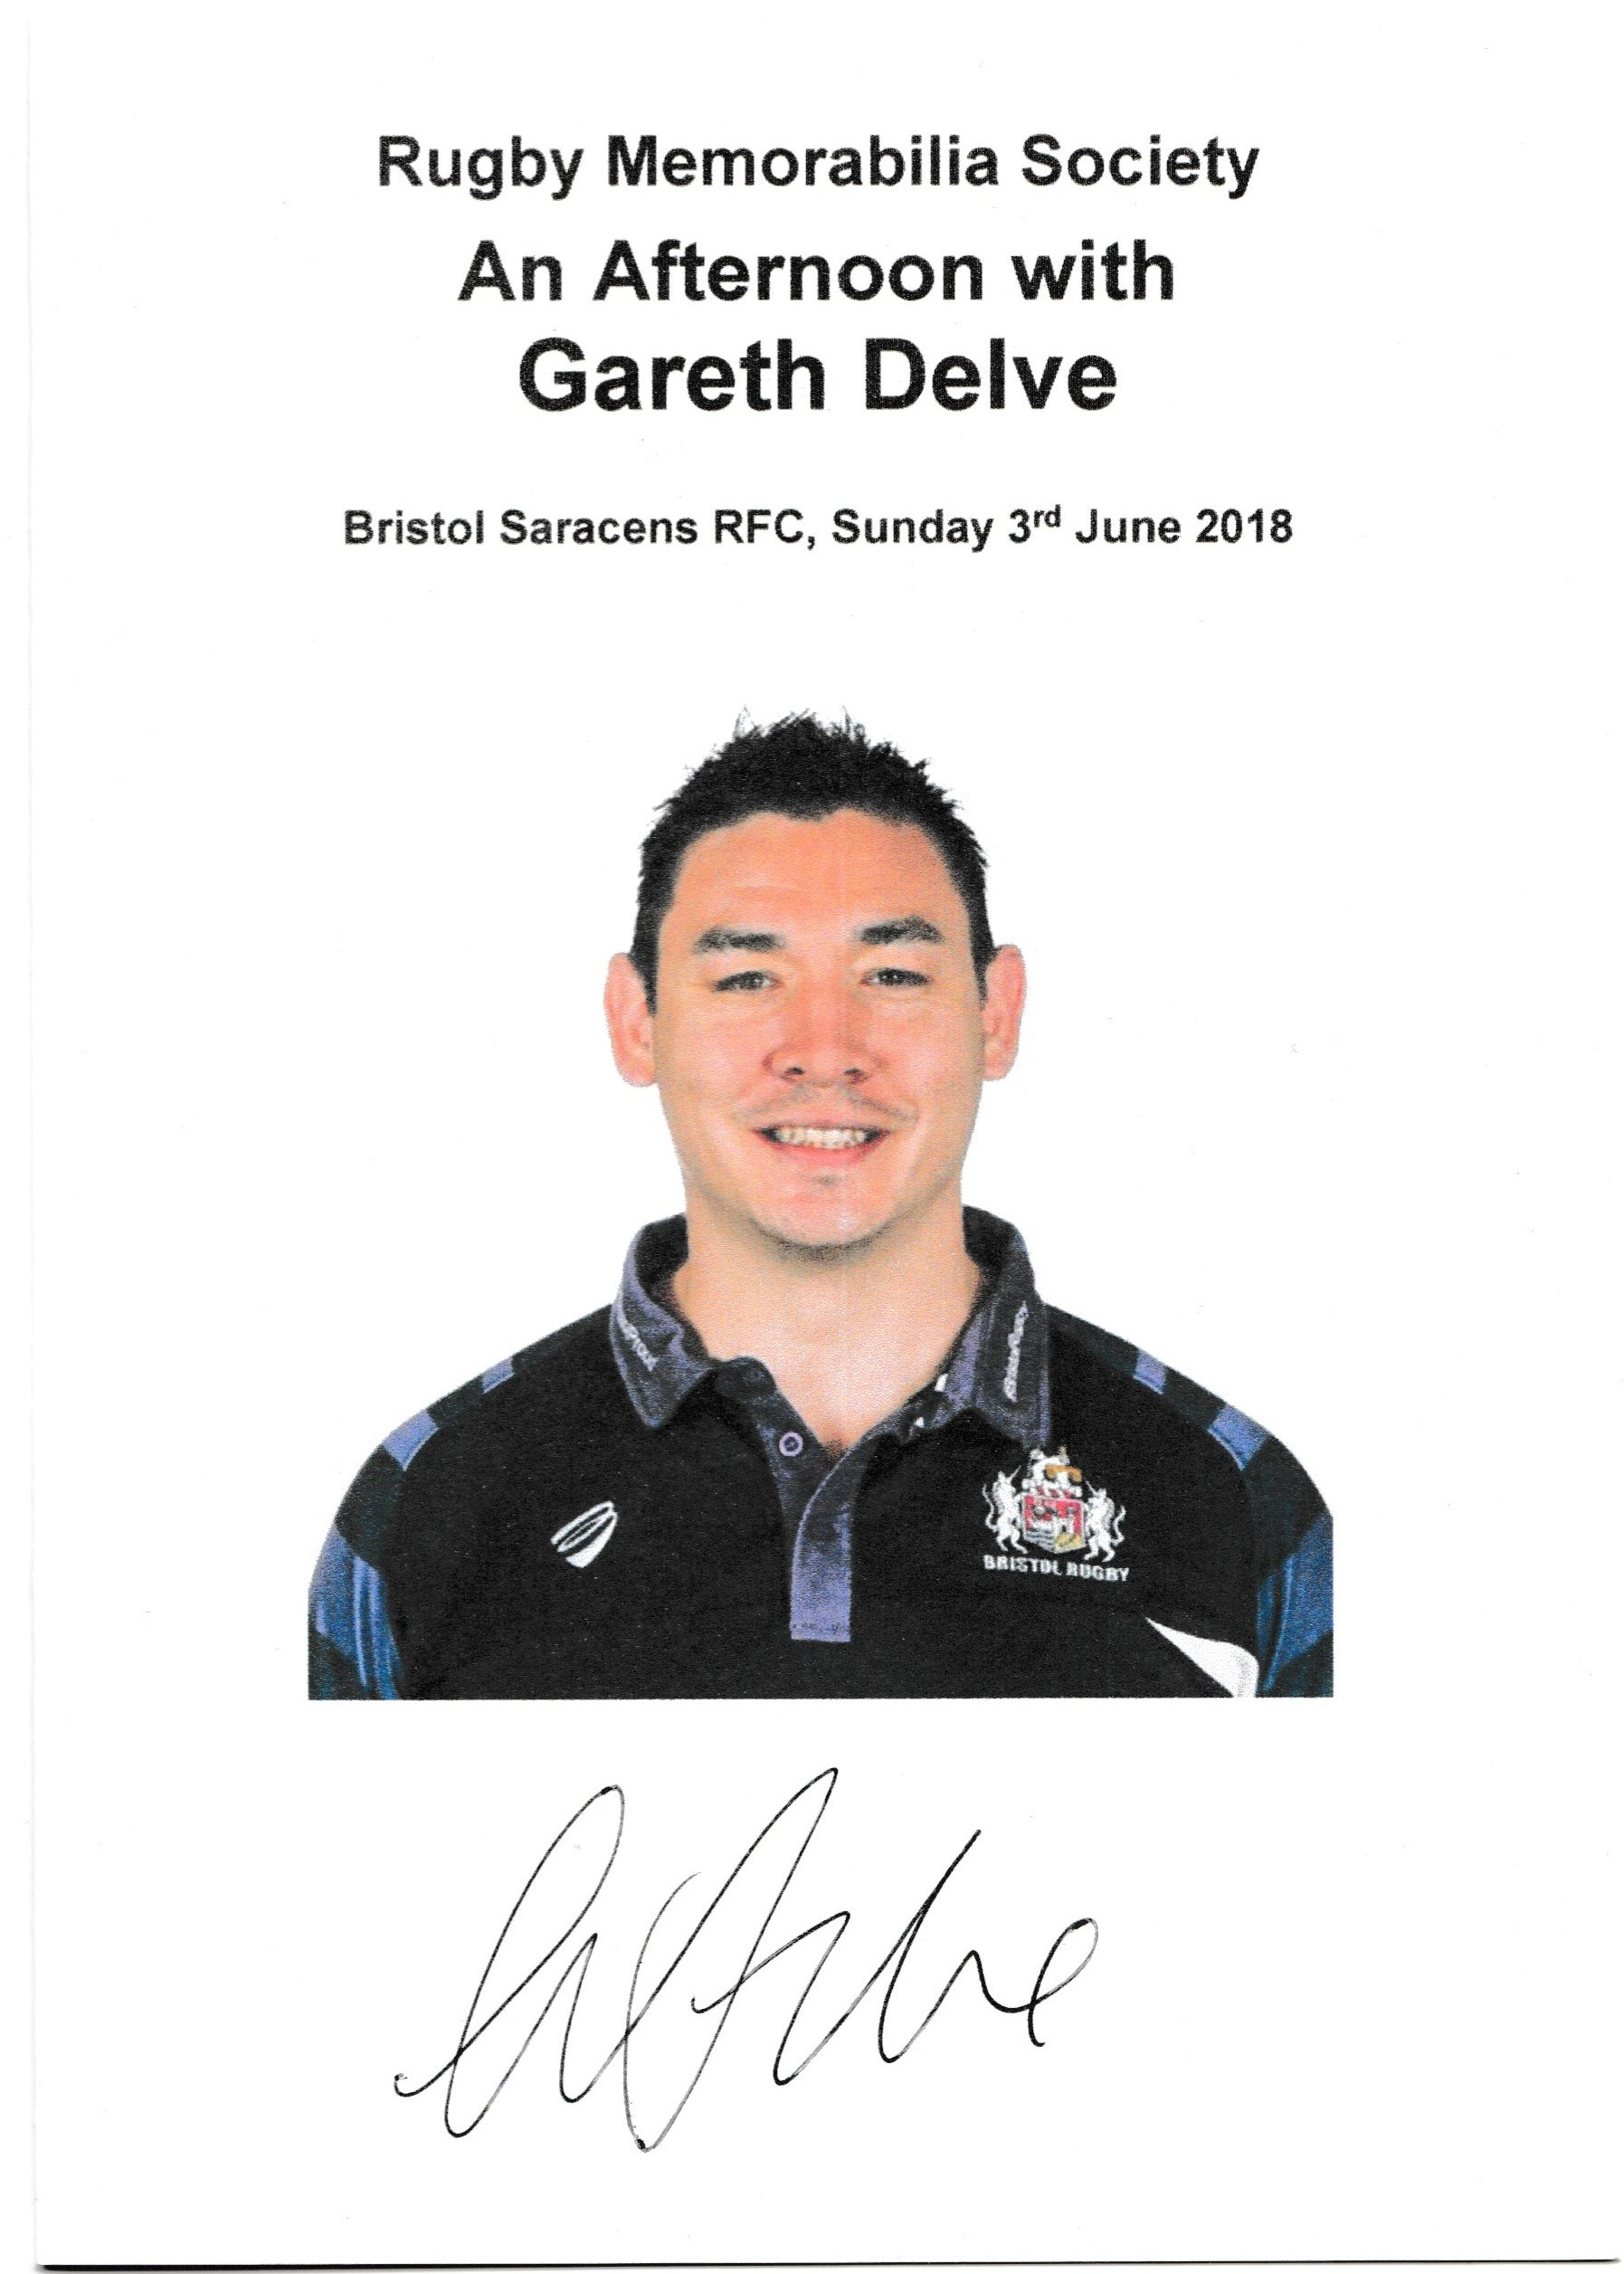 Rugby Memorabilia Society - AGM - Speakers Card